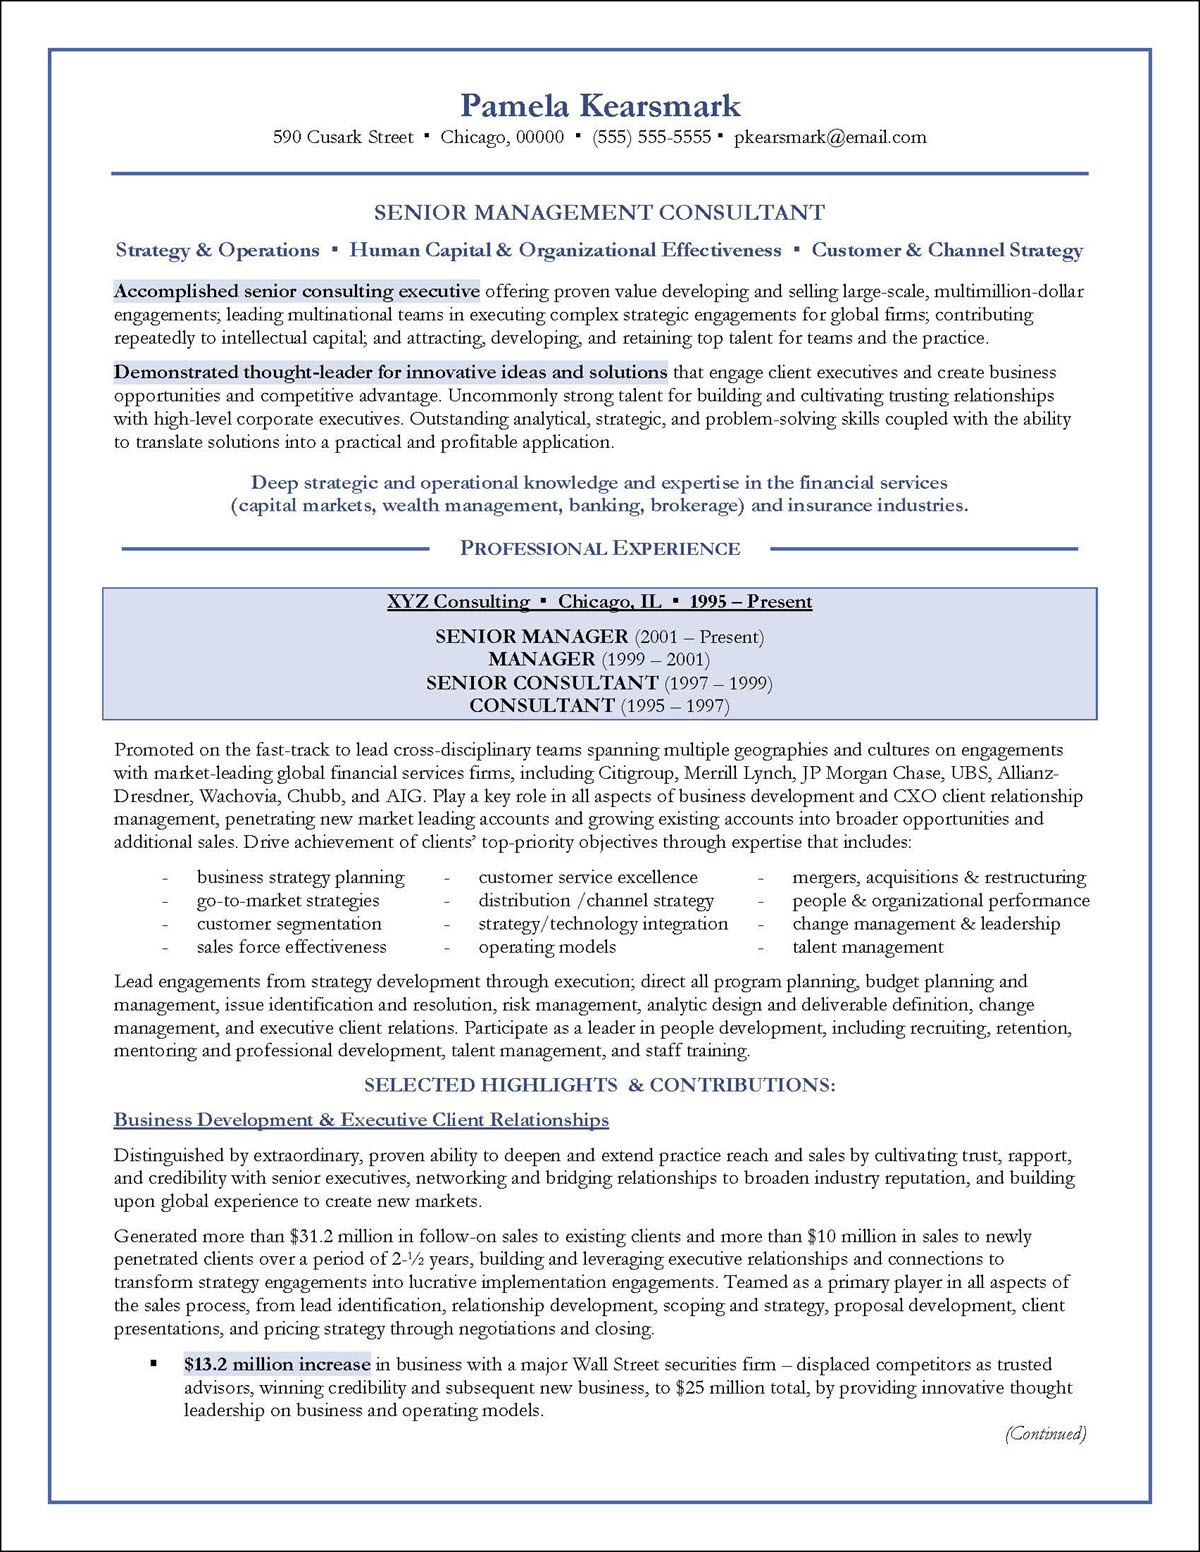 example of a executive resume resume pdf example of a executive resume executive resume examples resume resource management consulting resume example for executive